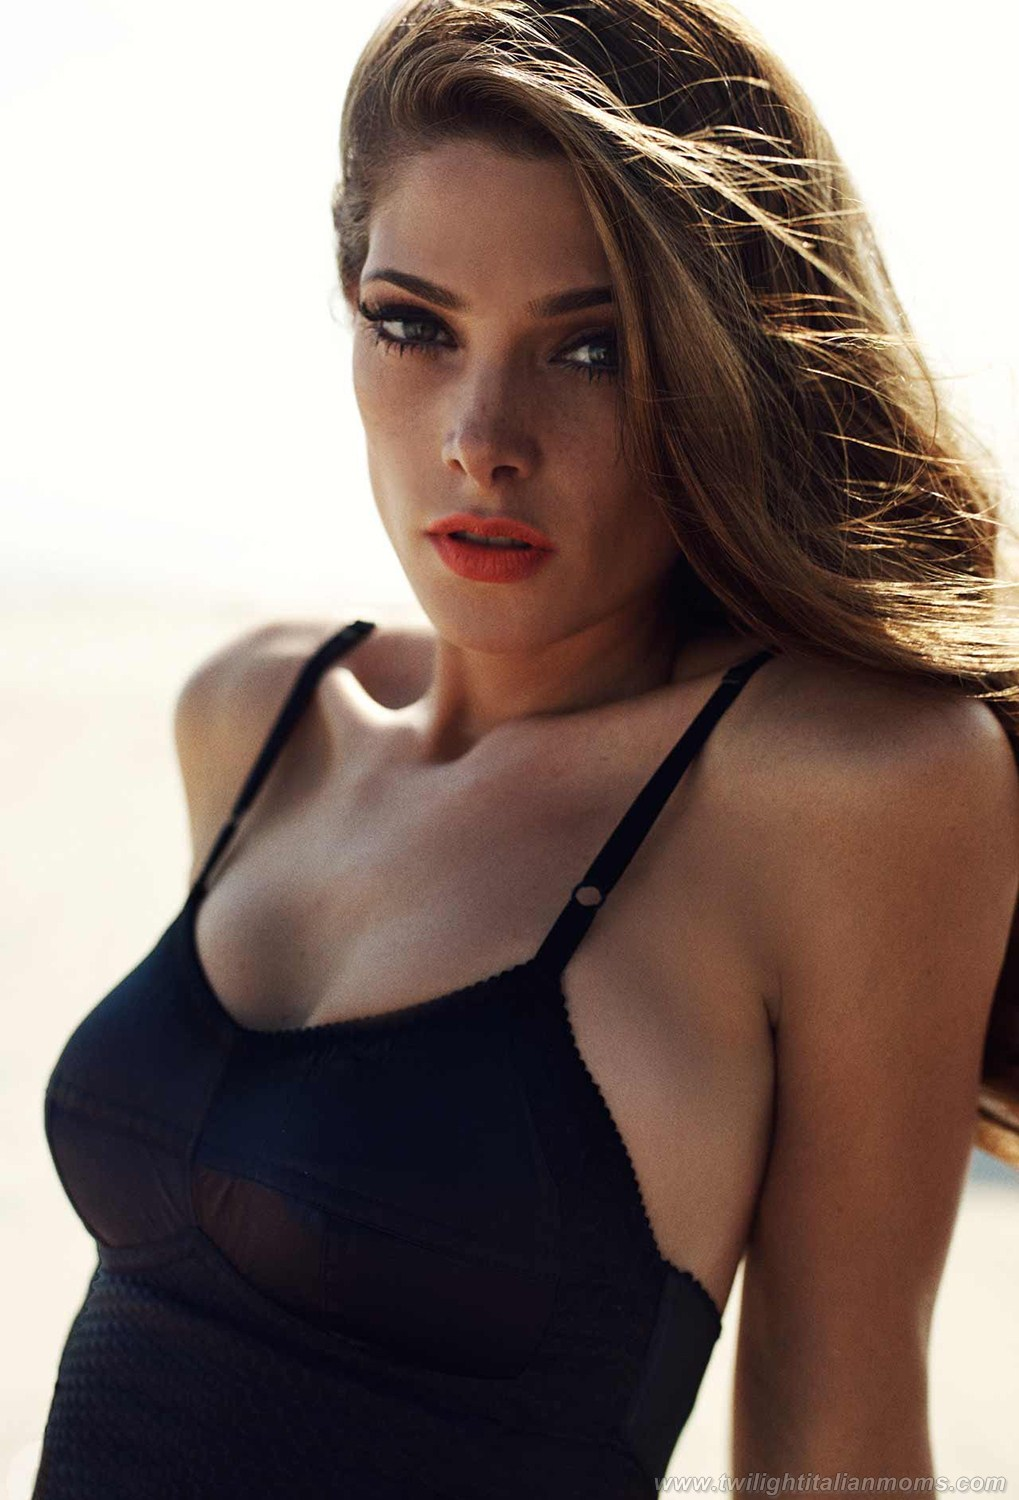 New GQ Outtakes of Ashley